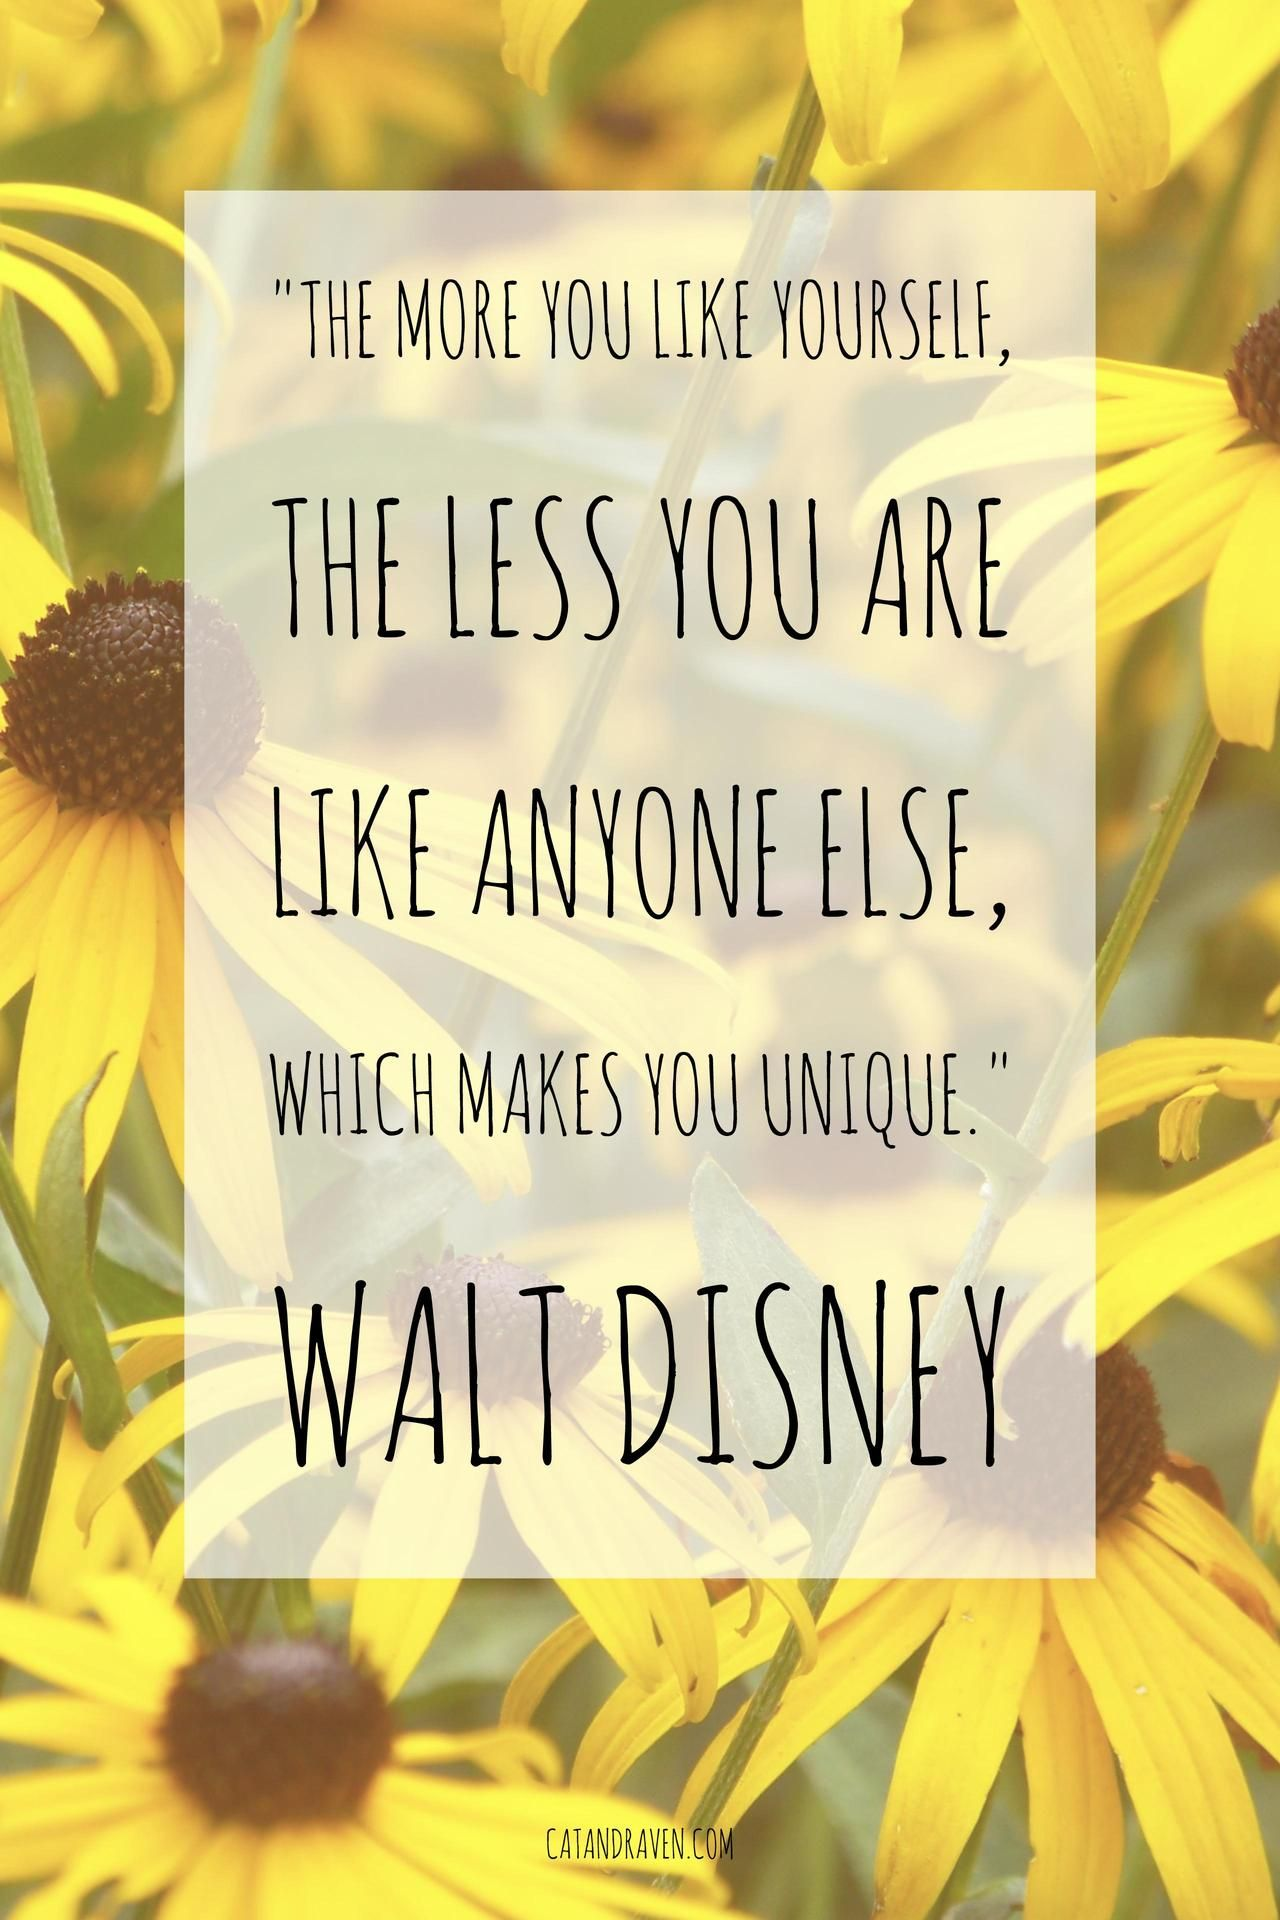 Walt Disney Quotes About Friendship The More You Like Yourself The Less You Are Like Anyone Else